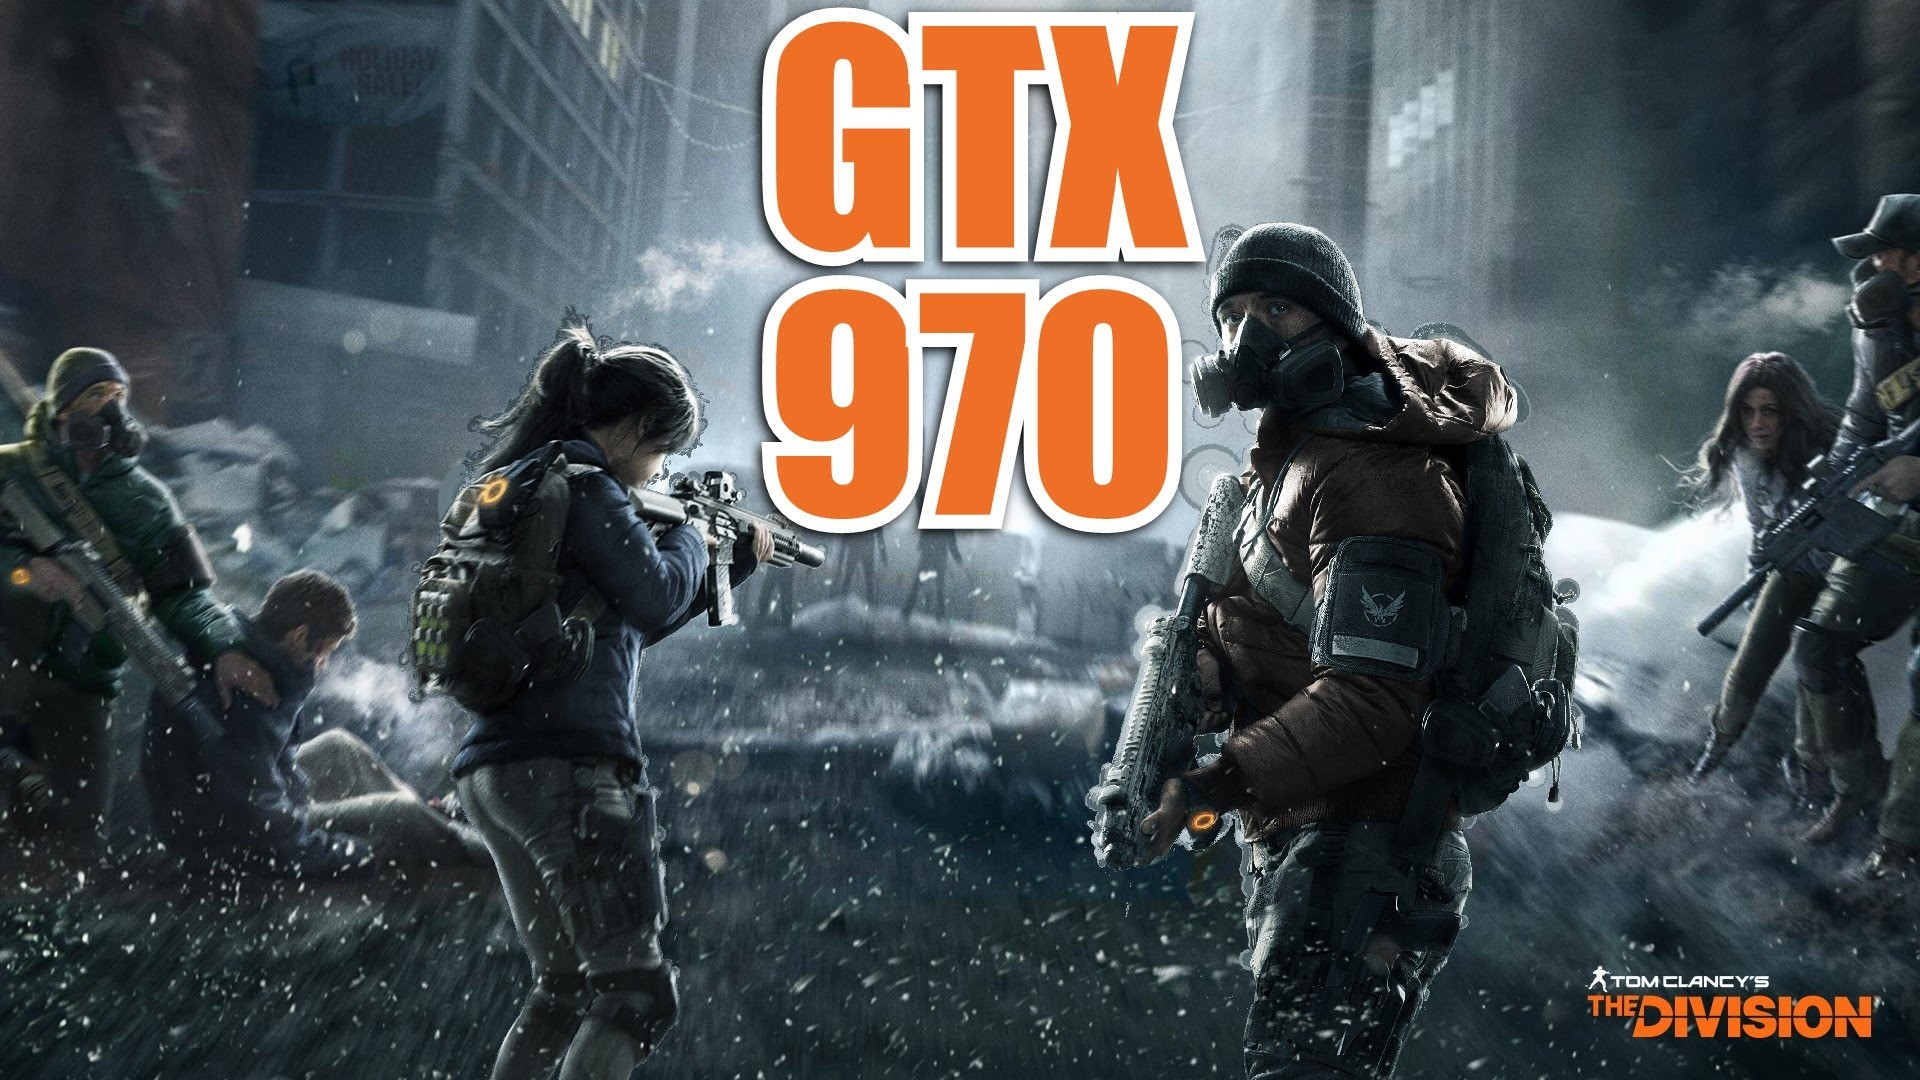 The Division – Open Beta | GTX 970 & i7 6700k | 1080p High | FRAME-RATE TEST